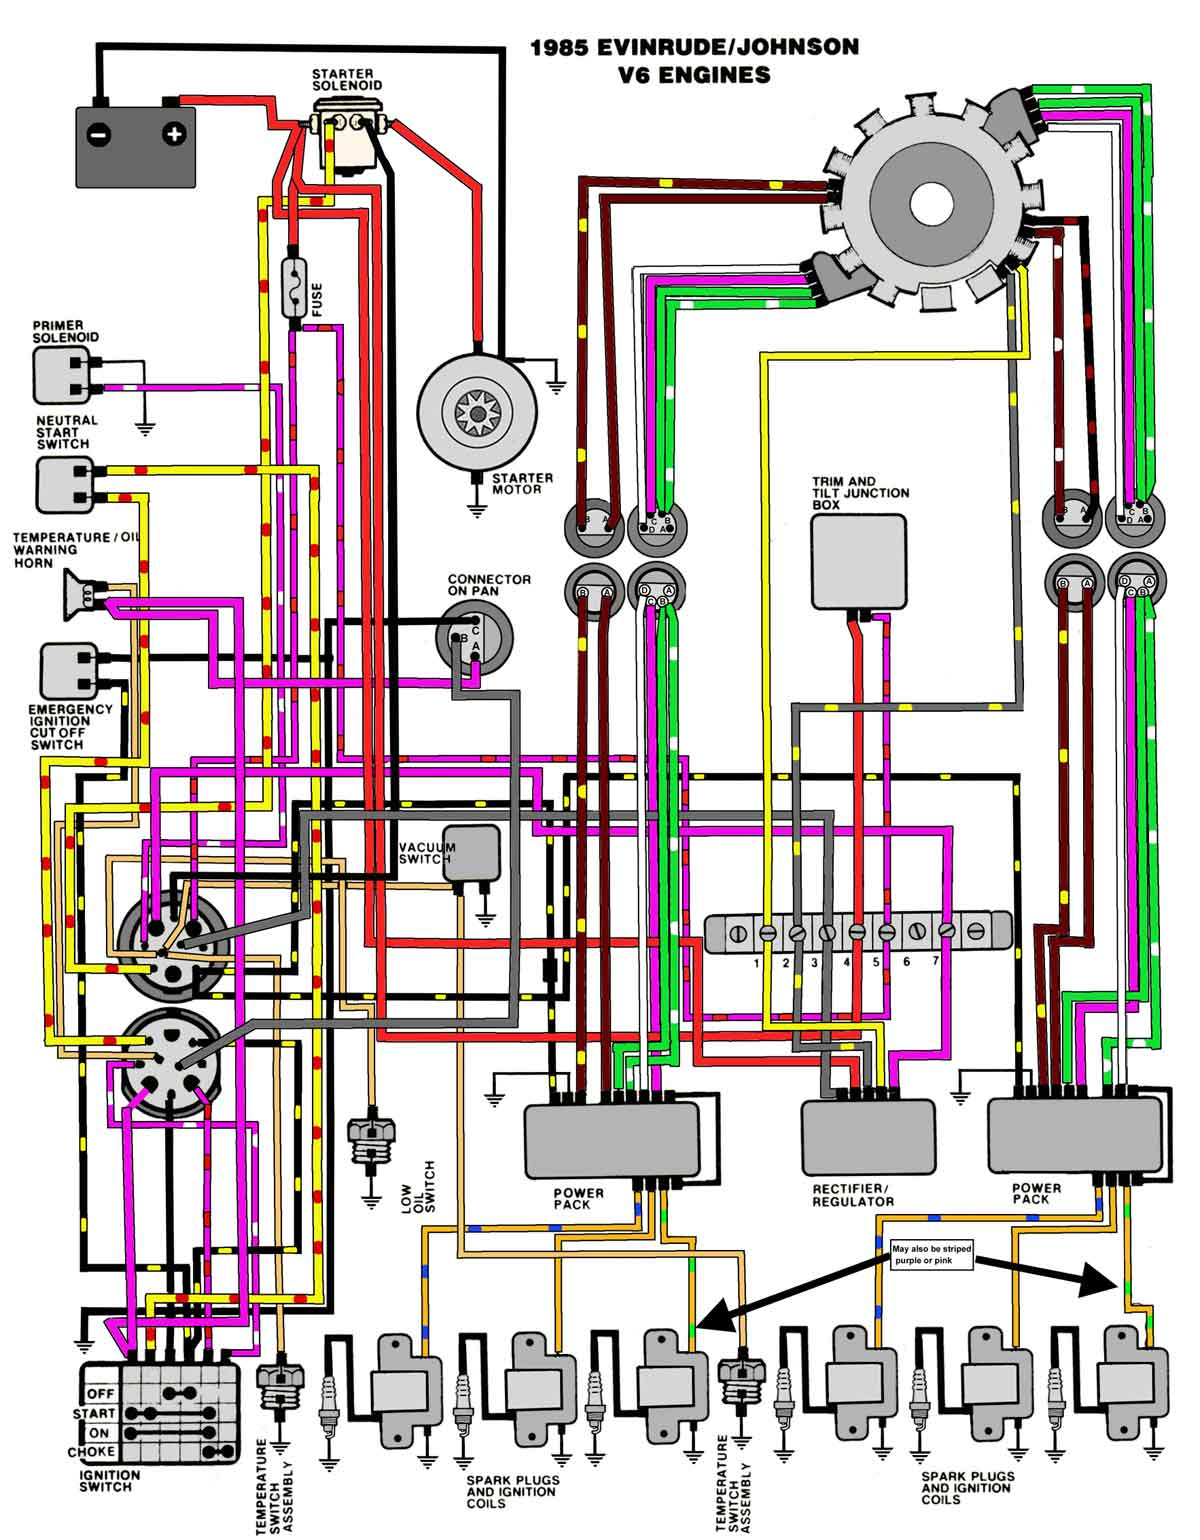 85_V6 mastertech marine evinrude johnson outboard wiring diagrams 1972 evinrude 65 hp wiring diagram at aneh.co